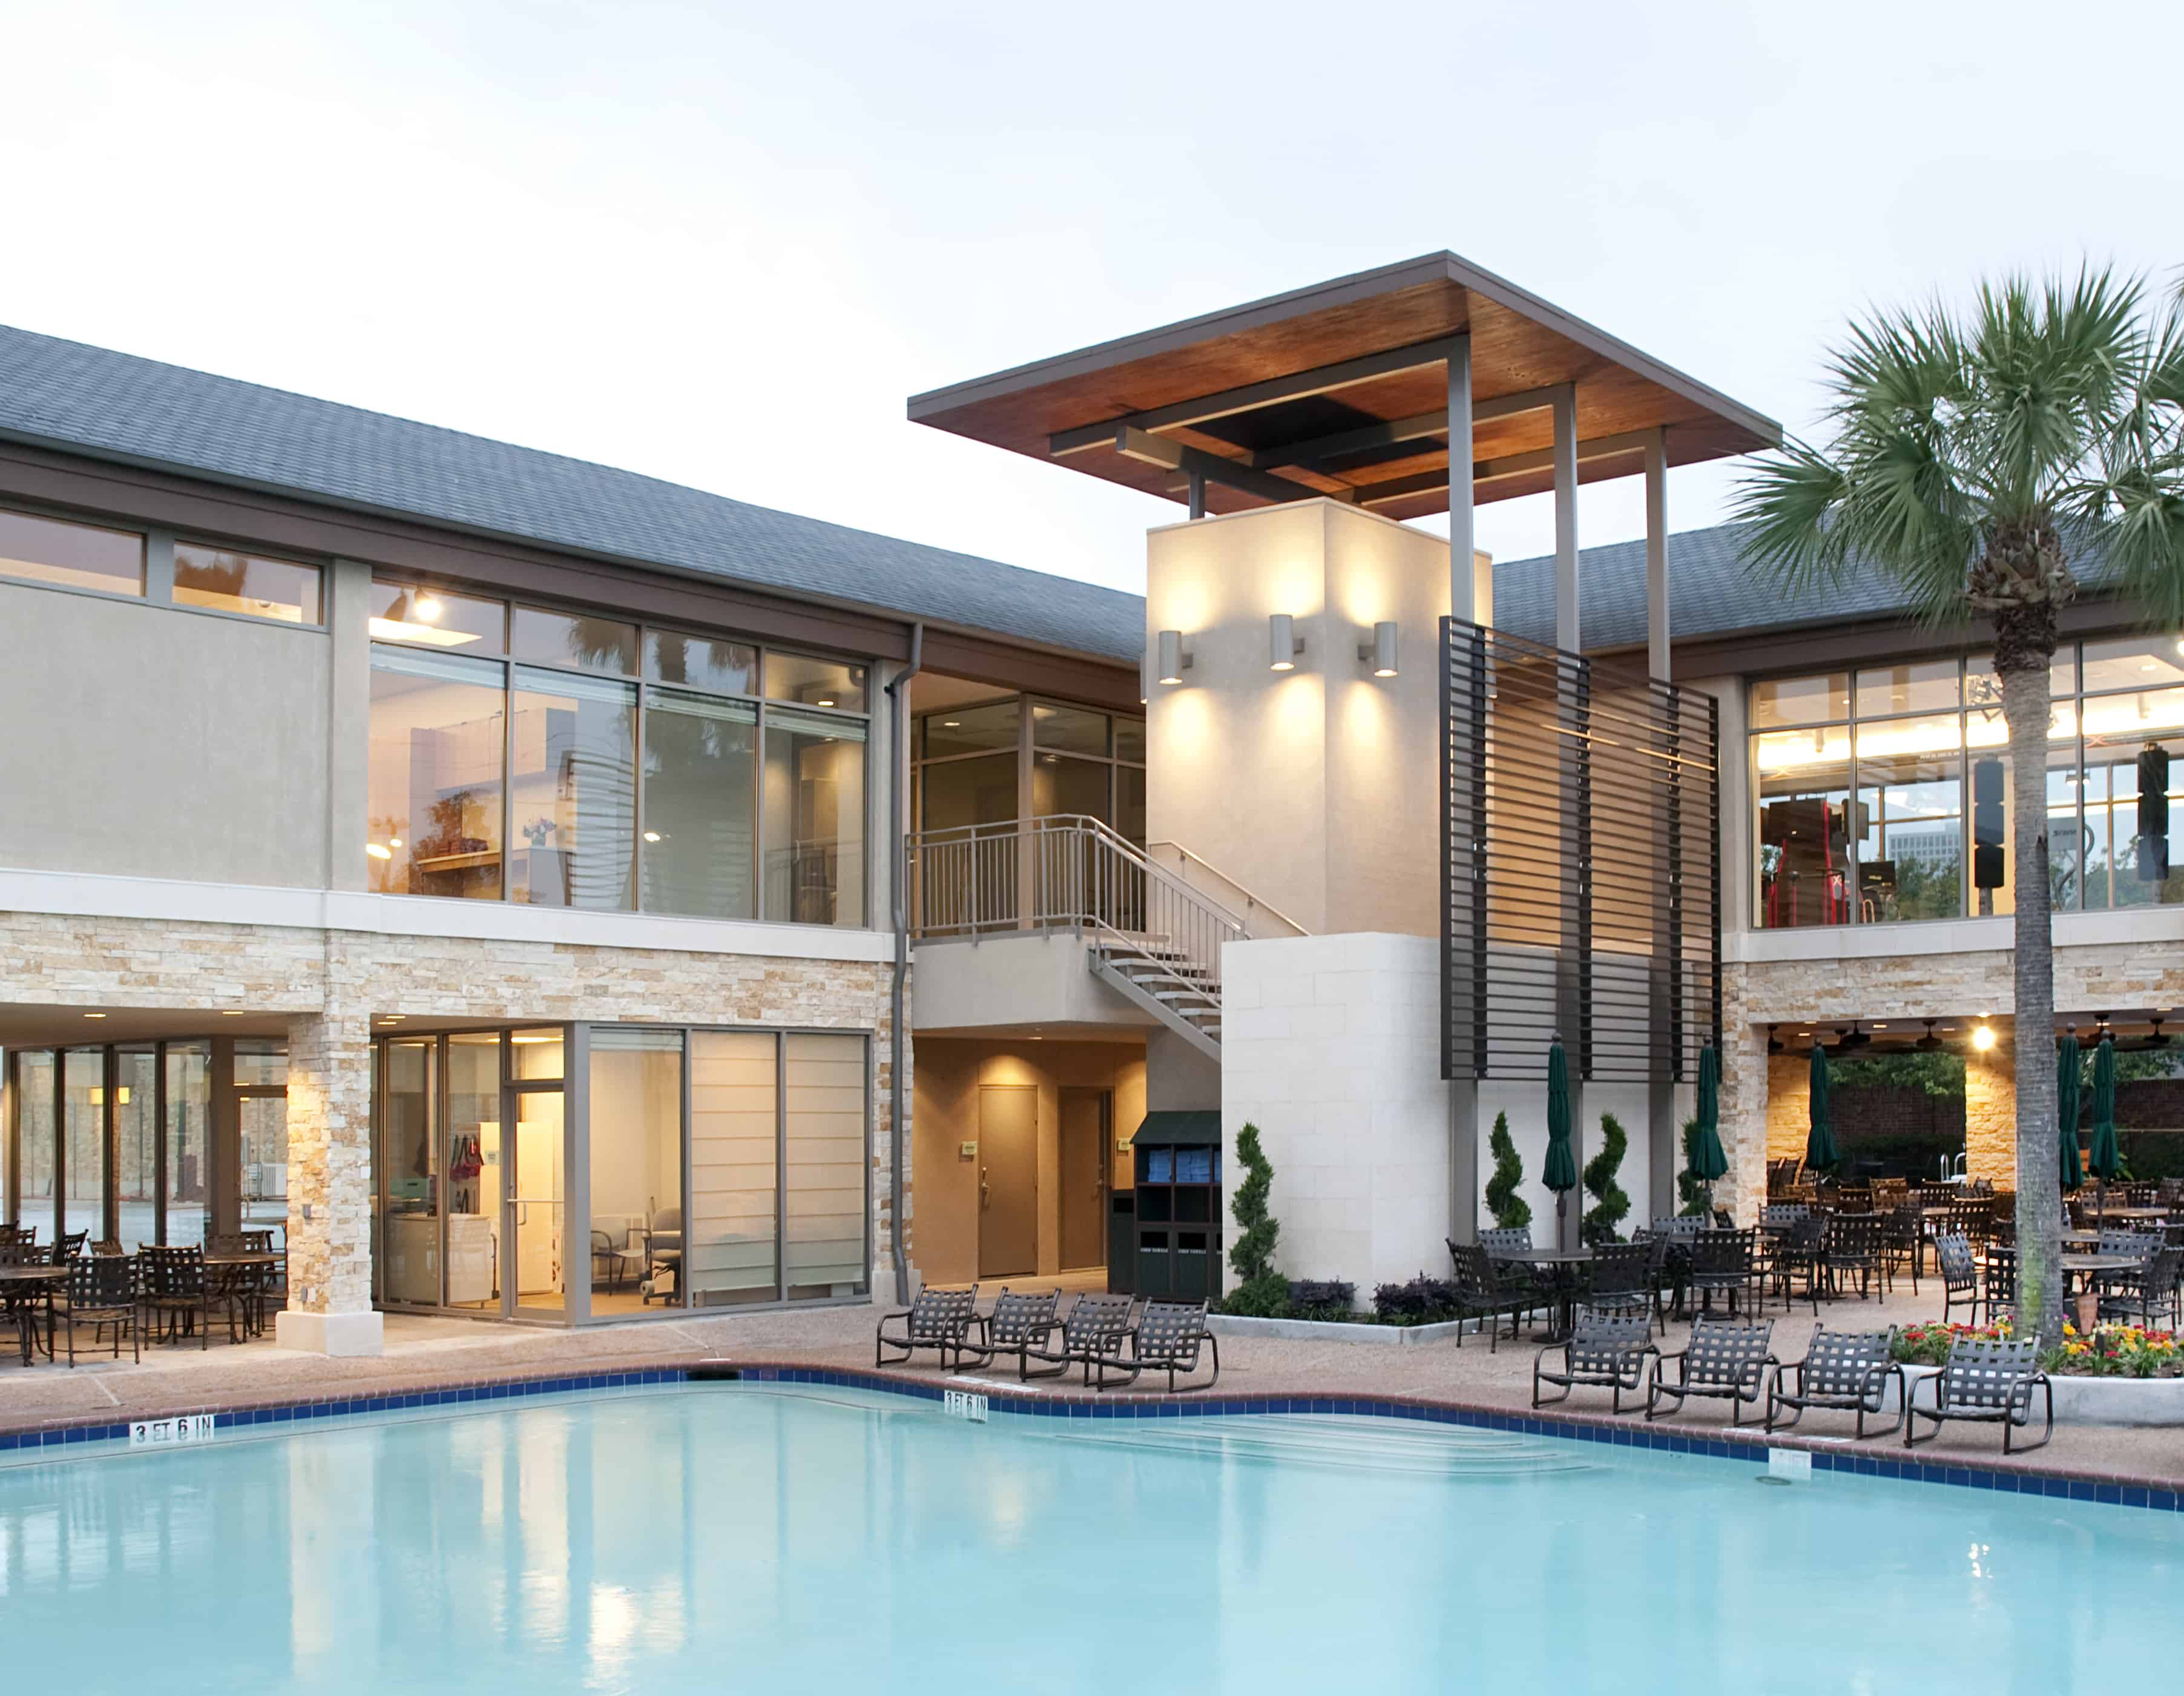 Hospitality Design Facade at Pool with metal screen